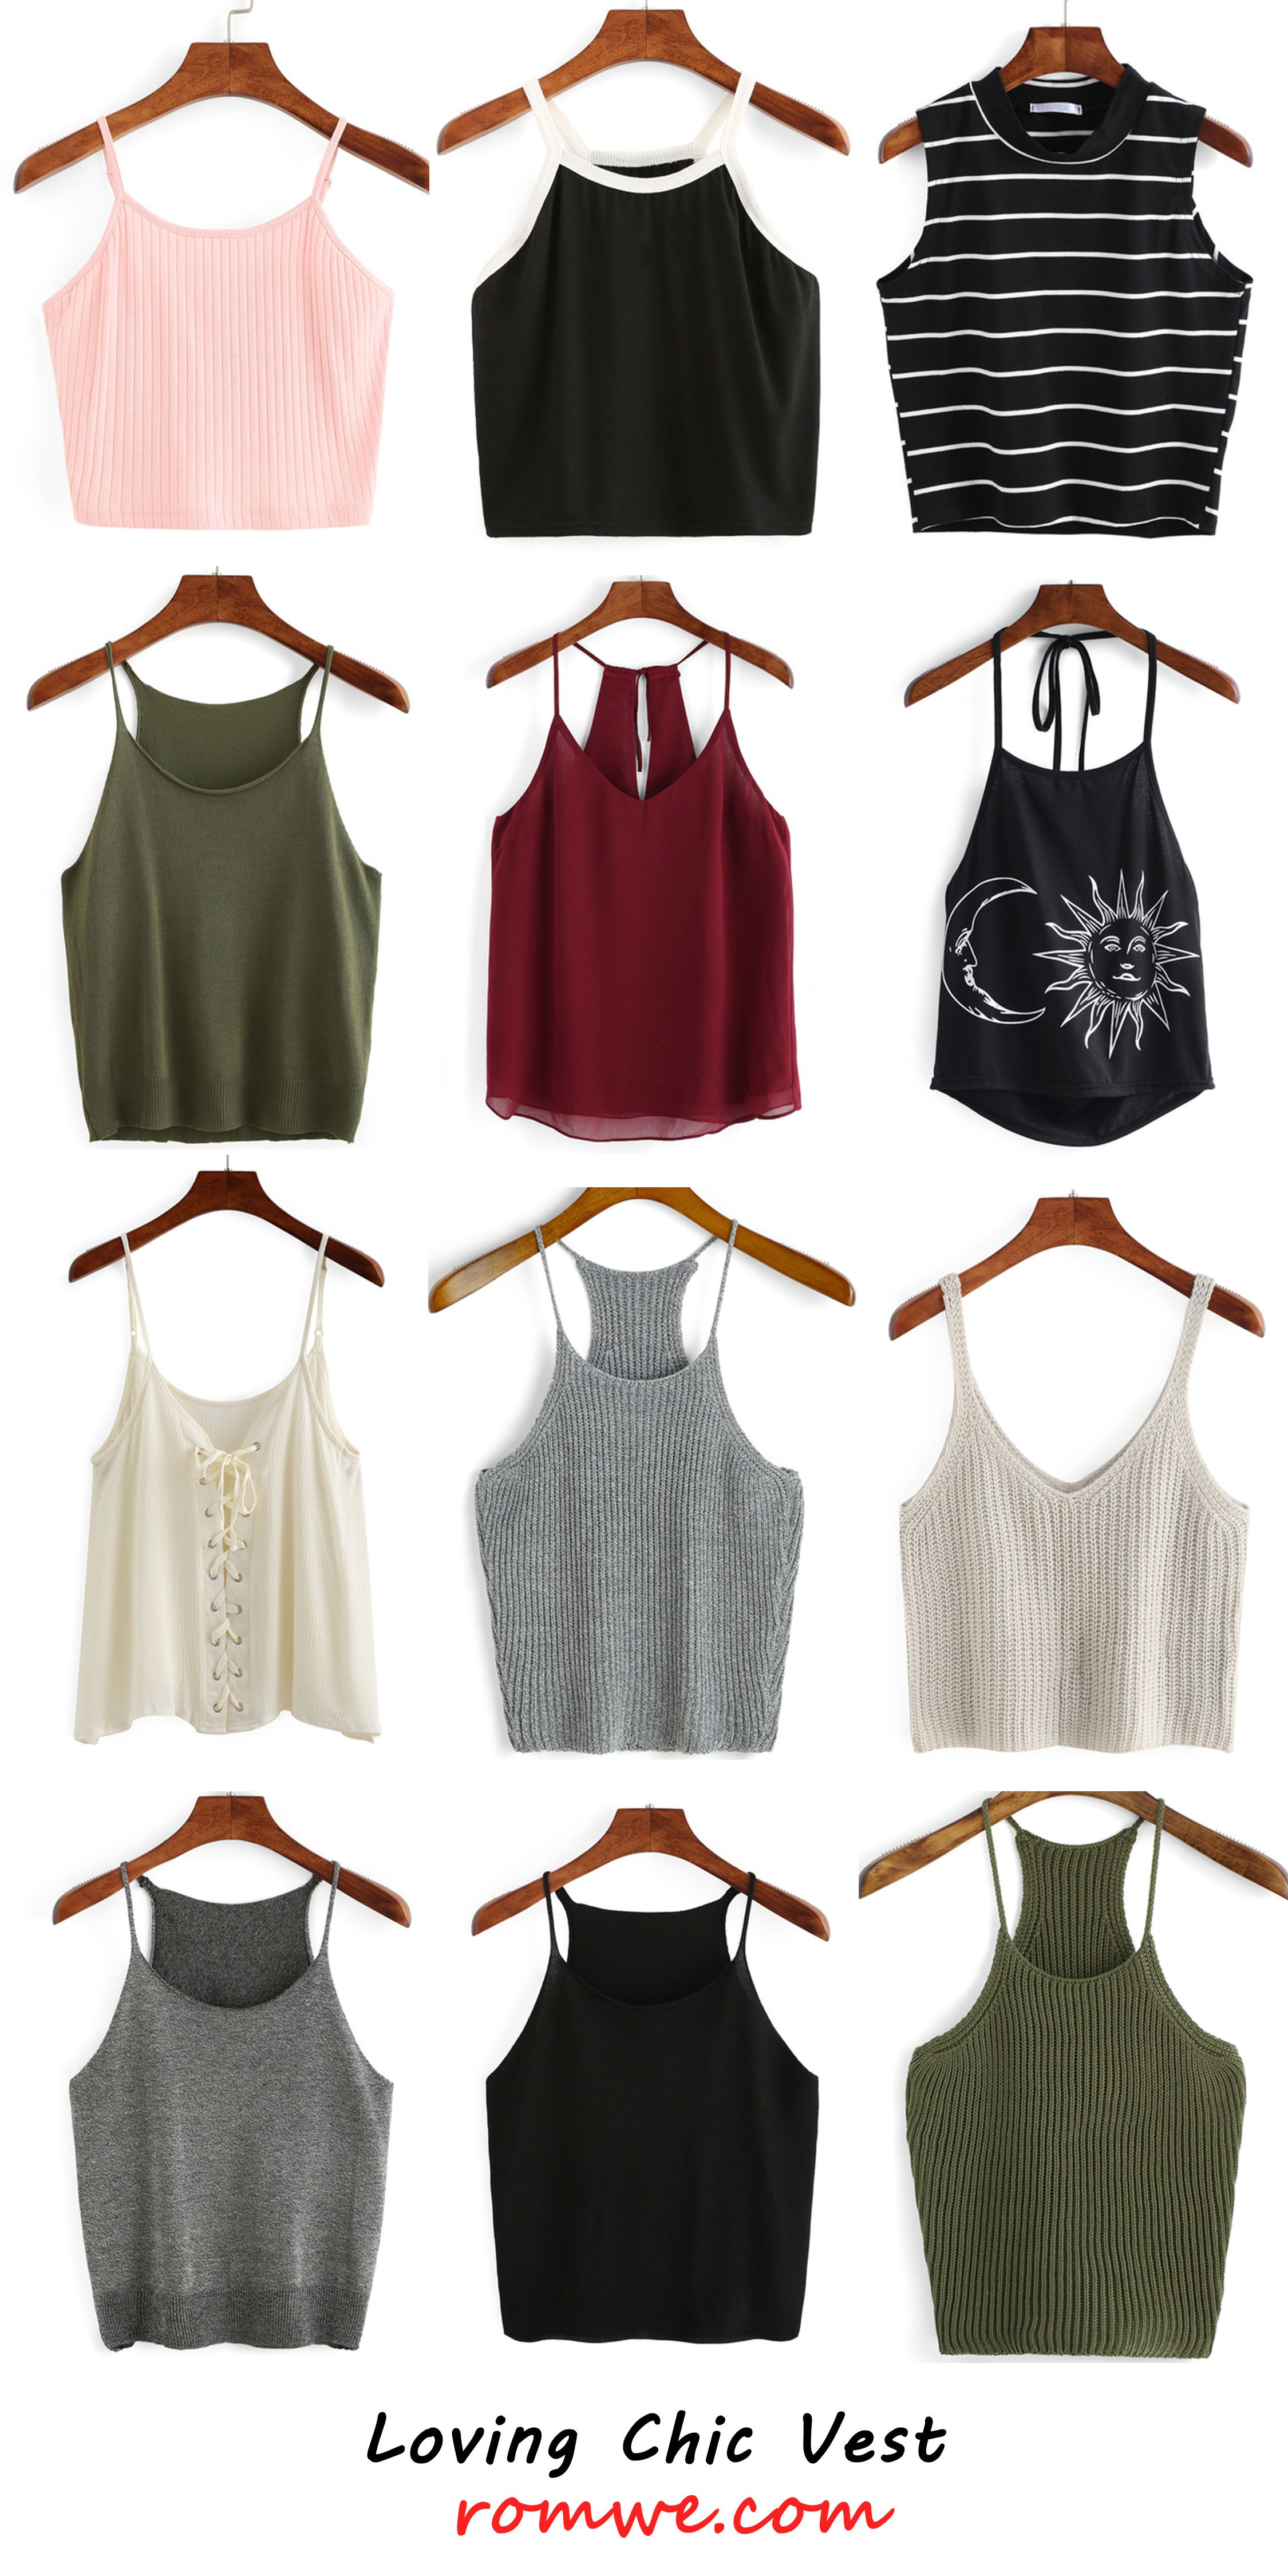 Loving chic vests - romwe.com